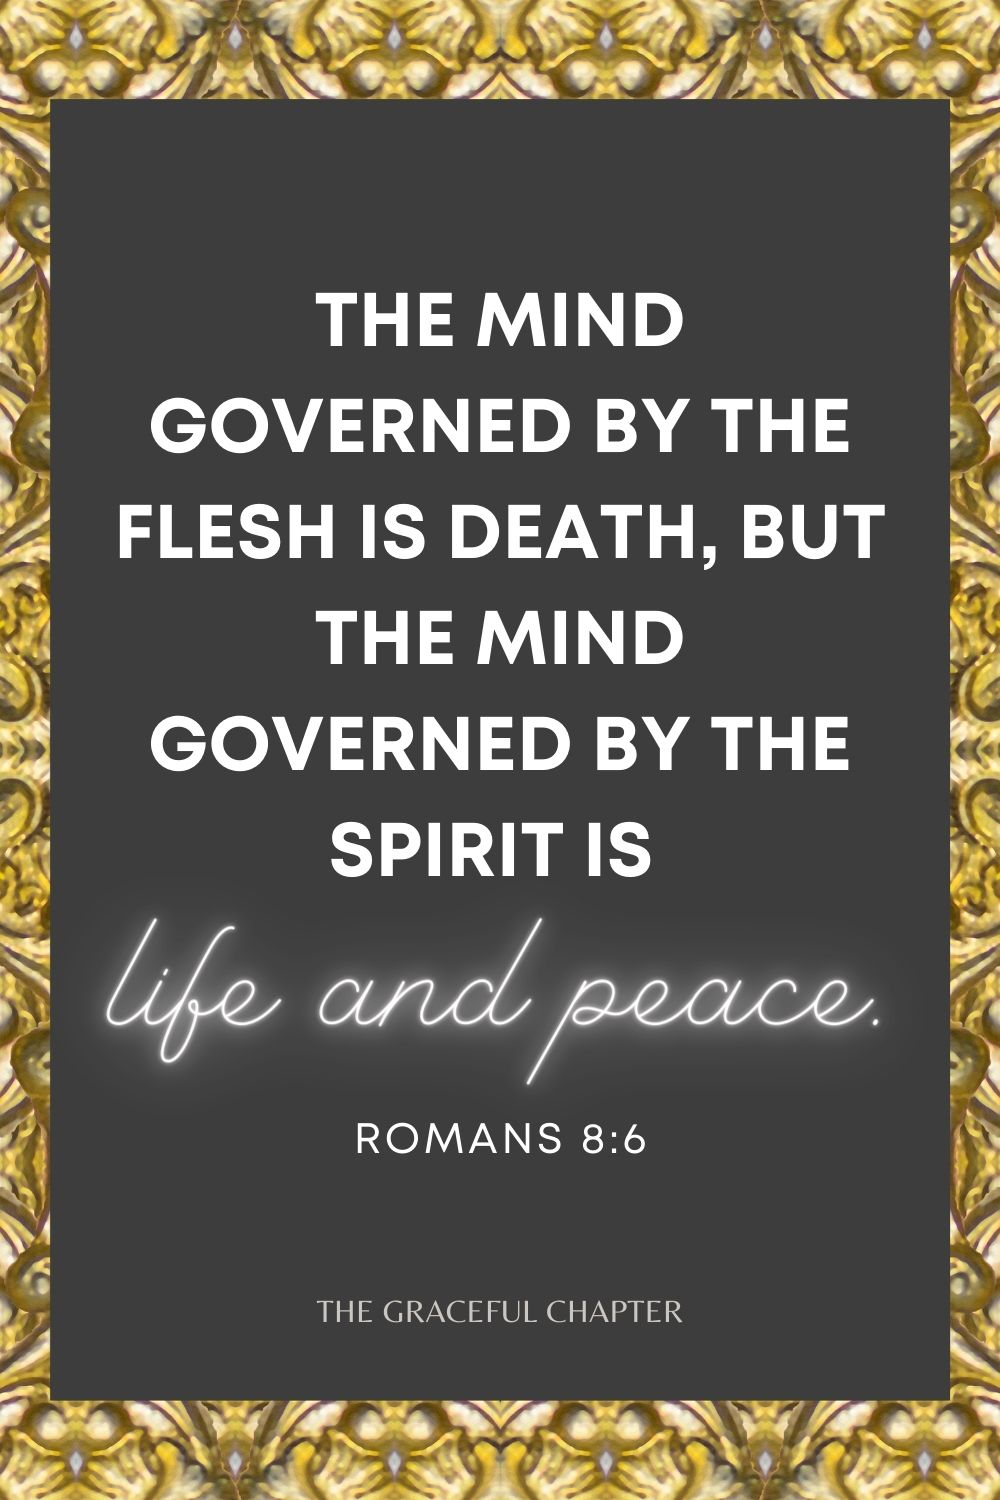 The mind governed by the flesh is death, but the mind governed by the Spirit is life and peace. Romans 8:6